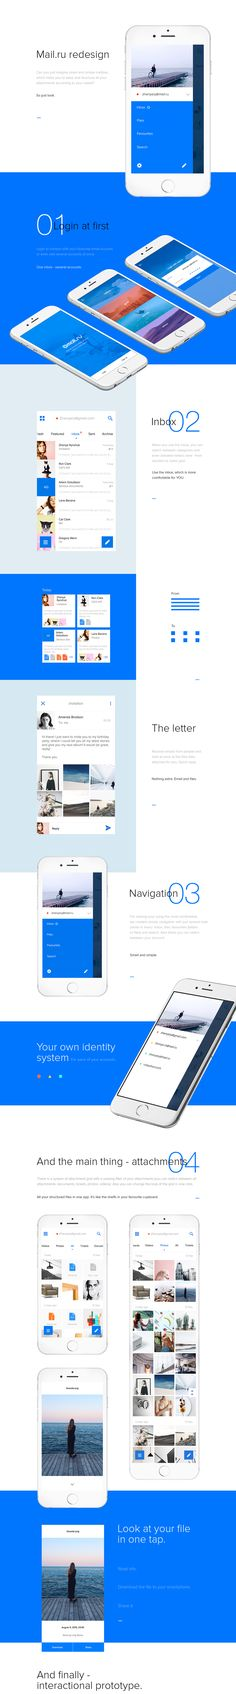 Mail.ru application redesign concept on App Design Served